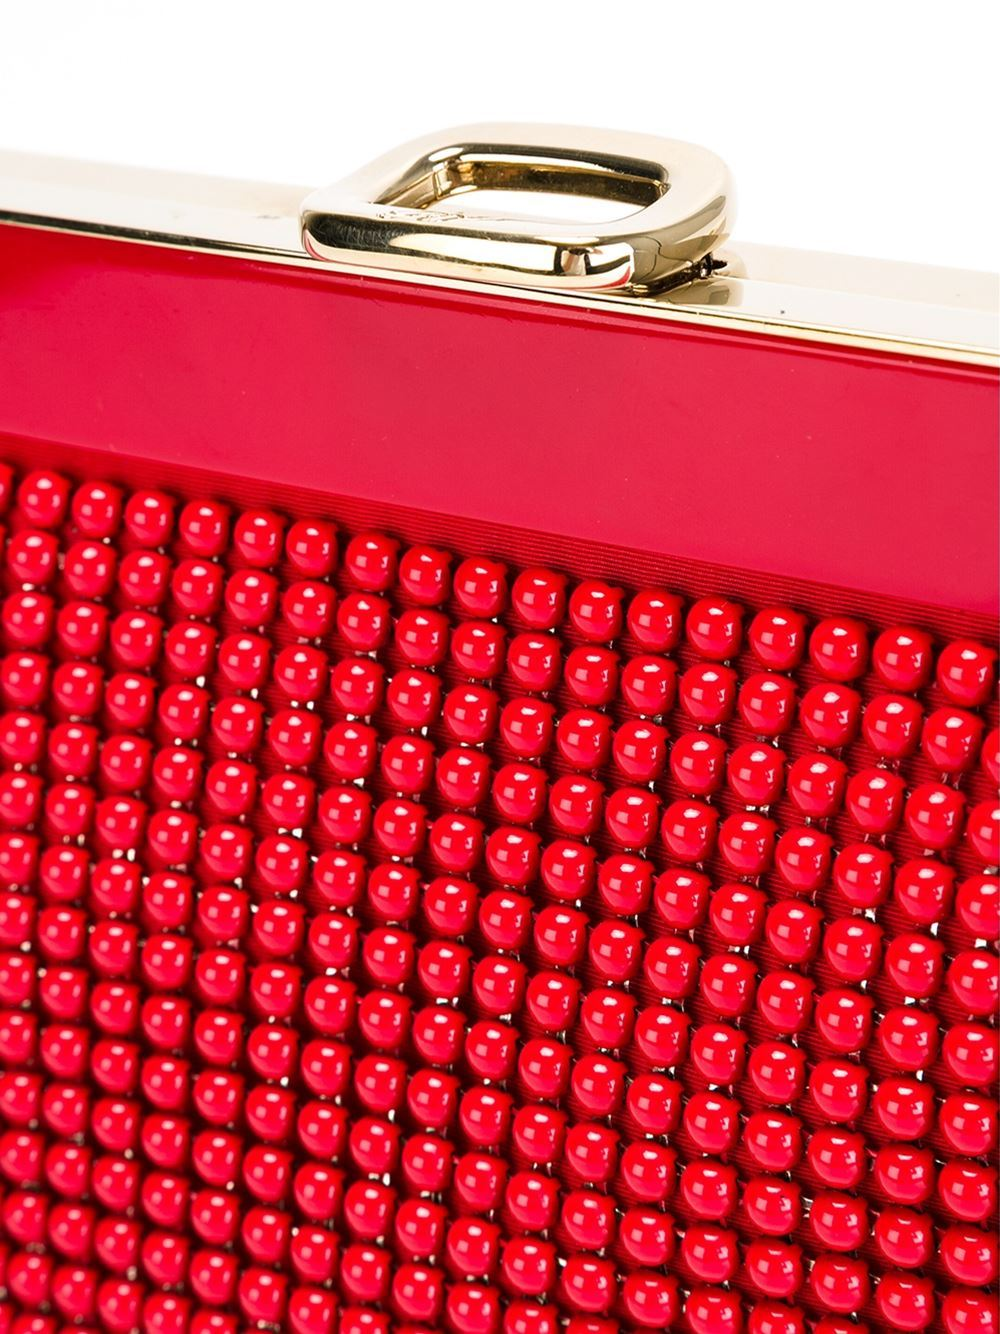 Roger Vivier Beaded Clutch In Excellent Condition For Sale In London, GB